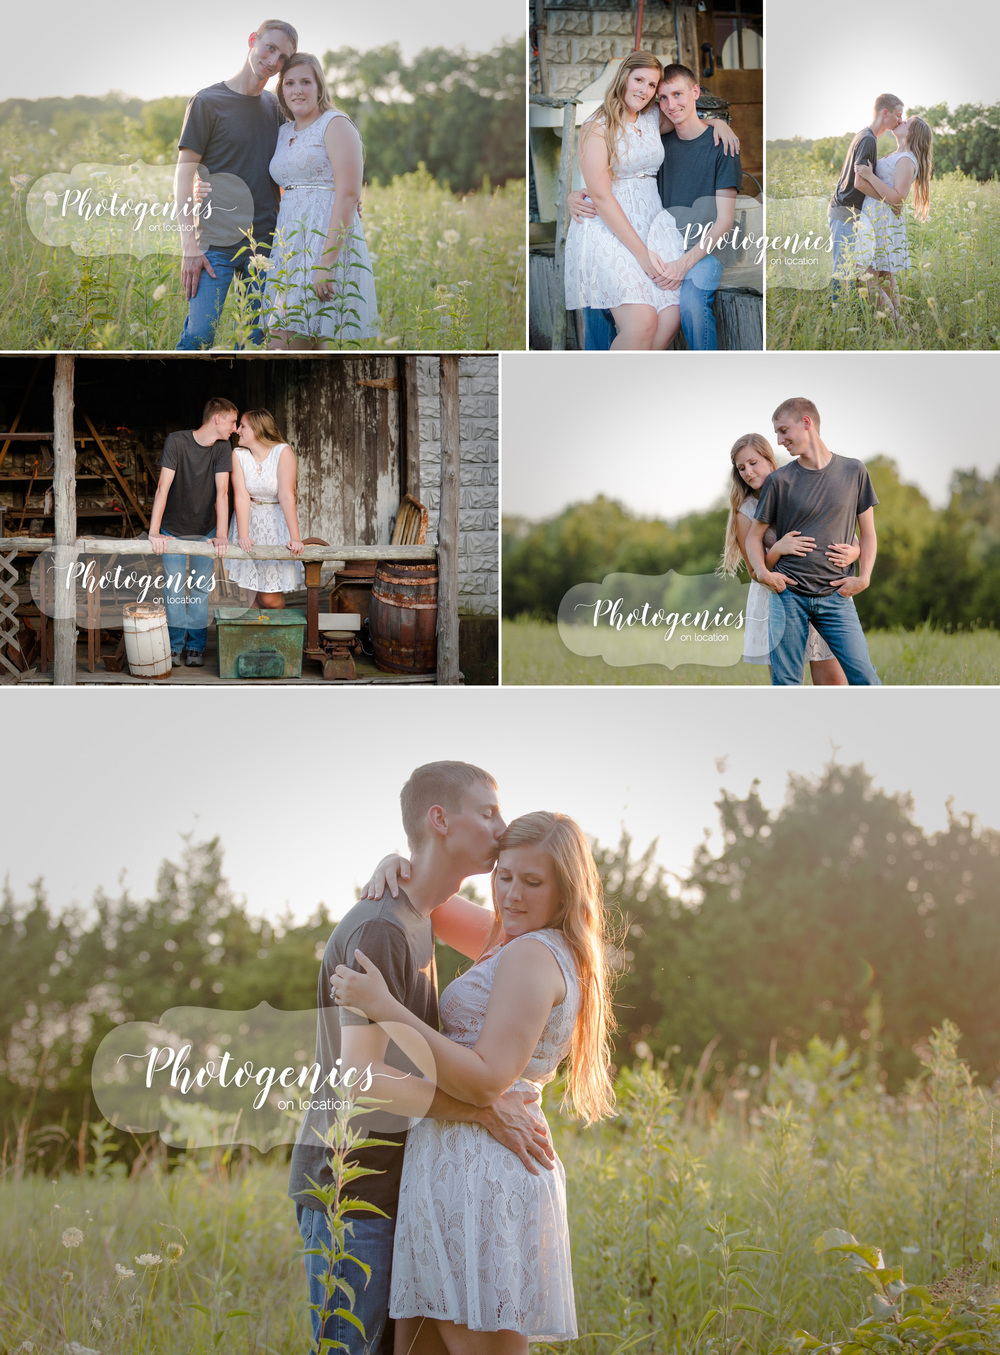 farm_sunset_engagement_pictures_photography_summer_session 2.jpg